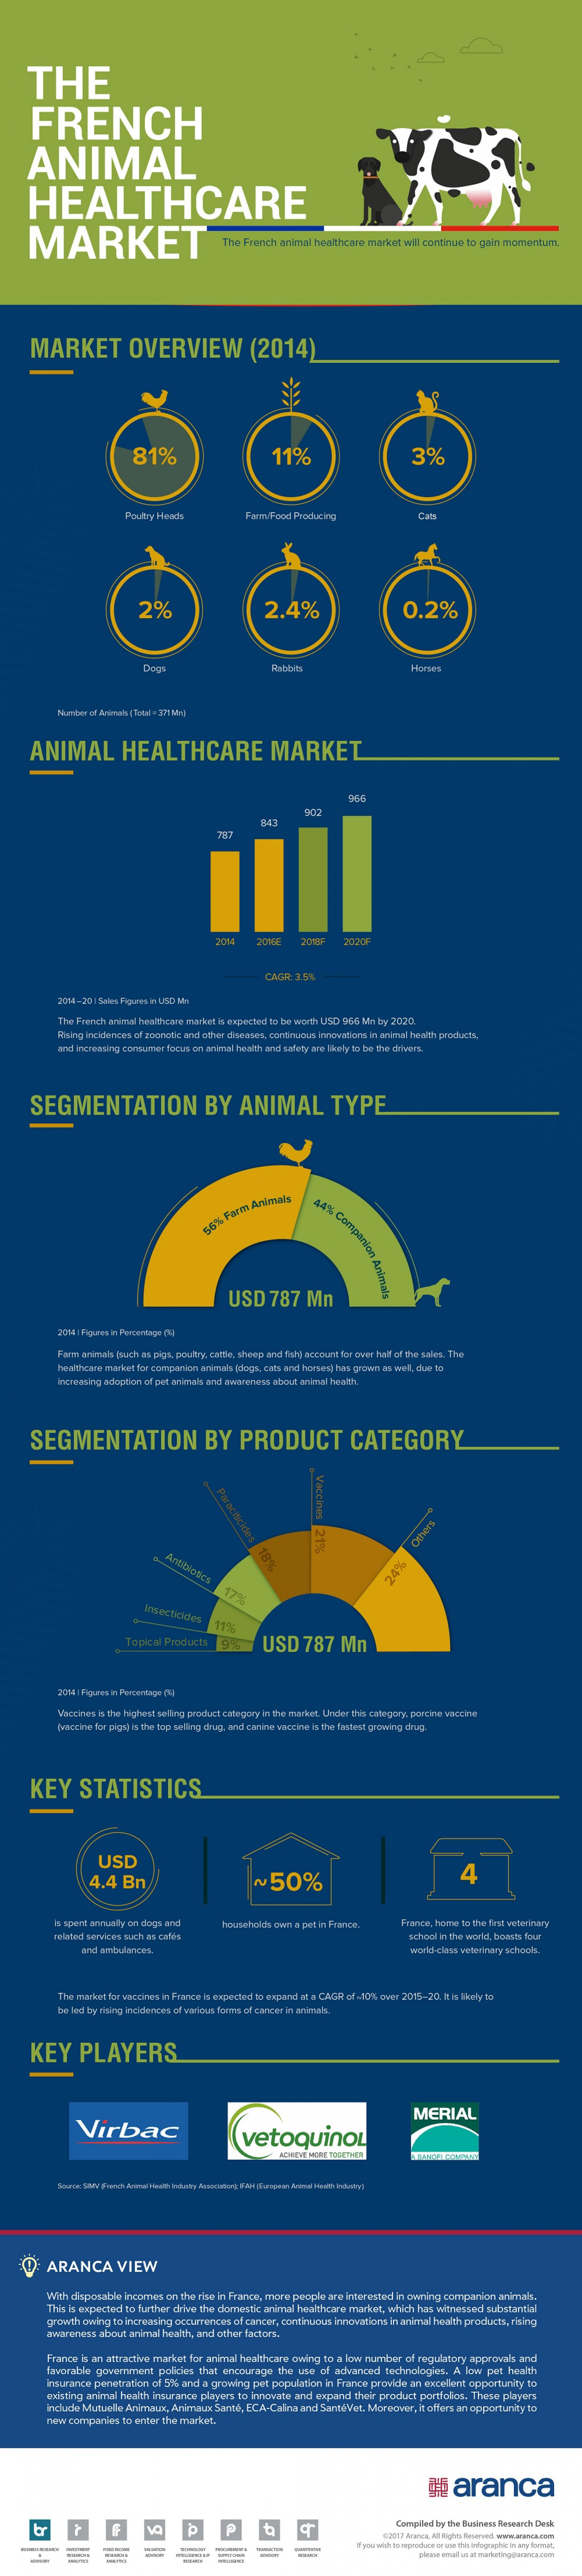 French Animal Healthcare Market Infographic